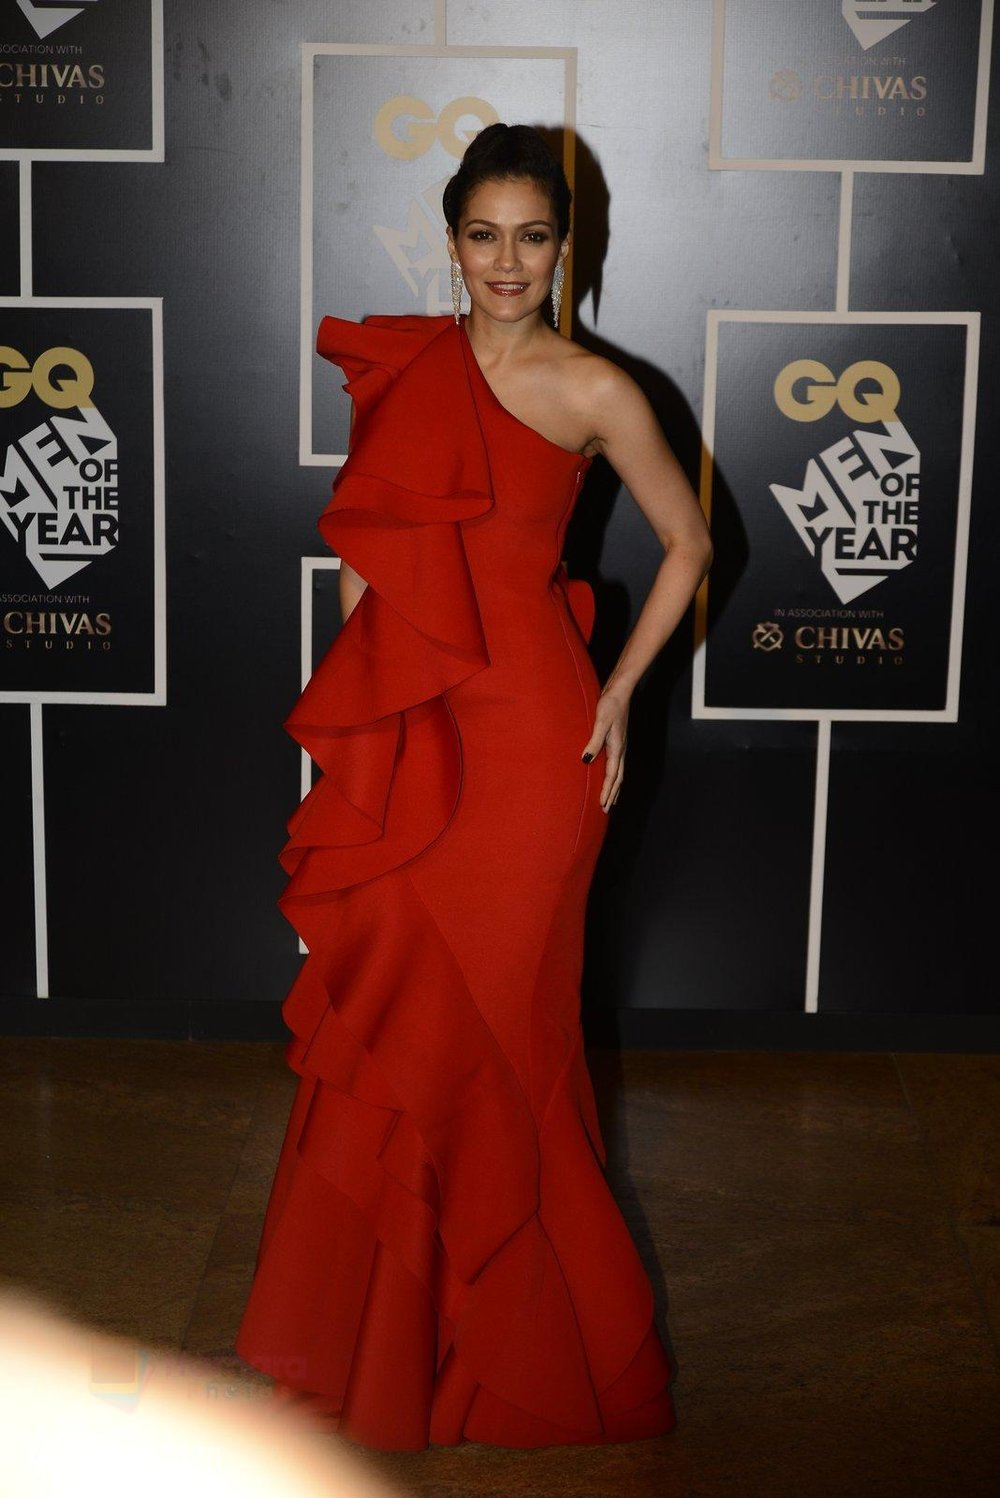 Waluscha-de-Sousa-at-GQ-MEN-OF-THE-YEAR-on-27th-Sept-2016-1193.jpg